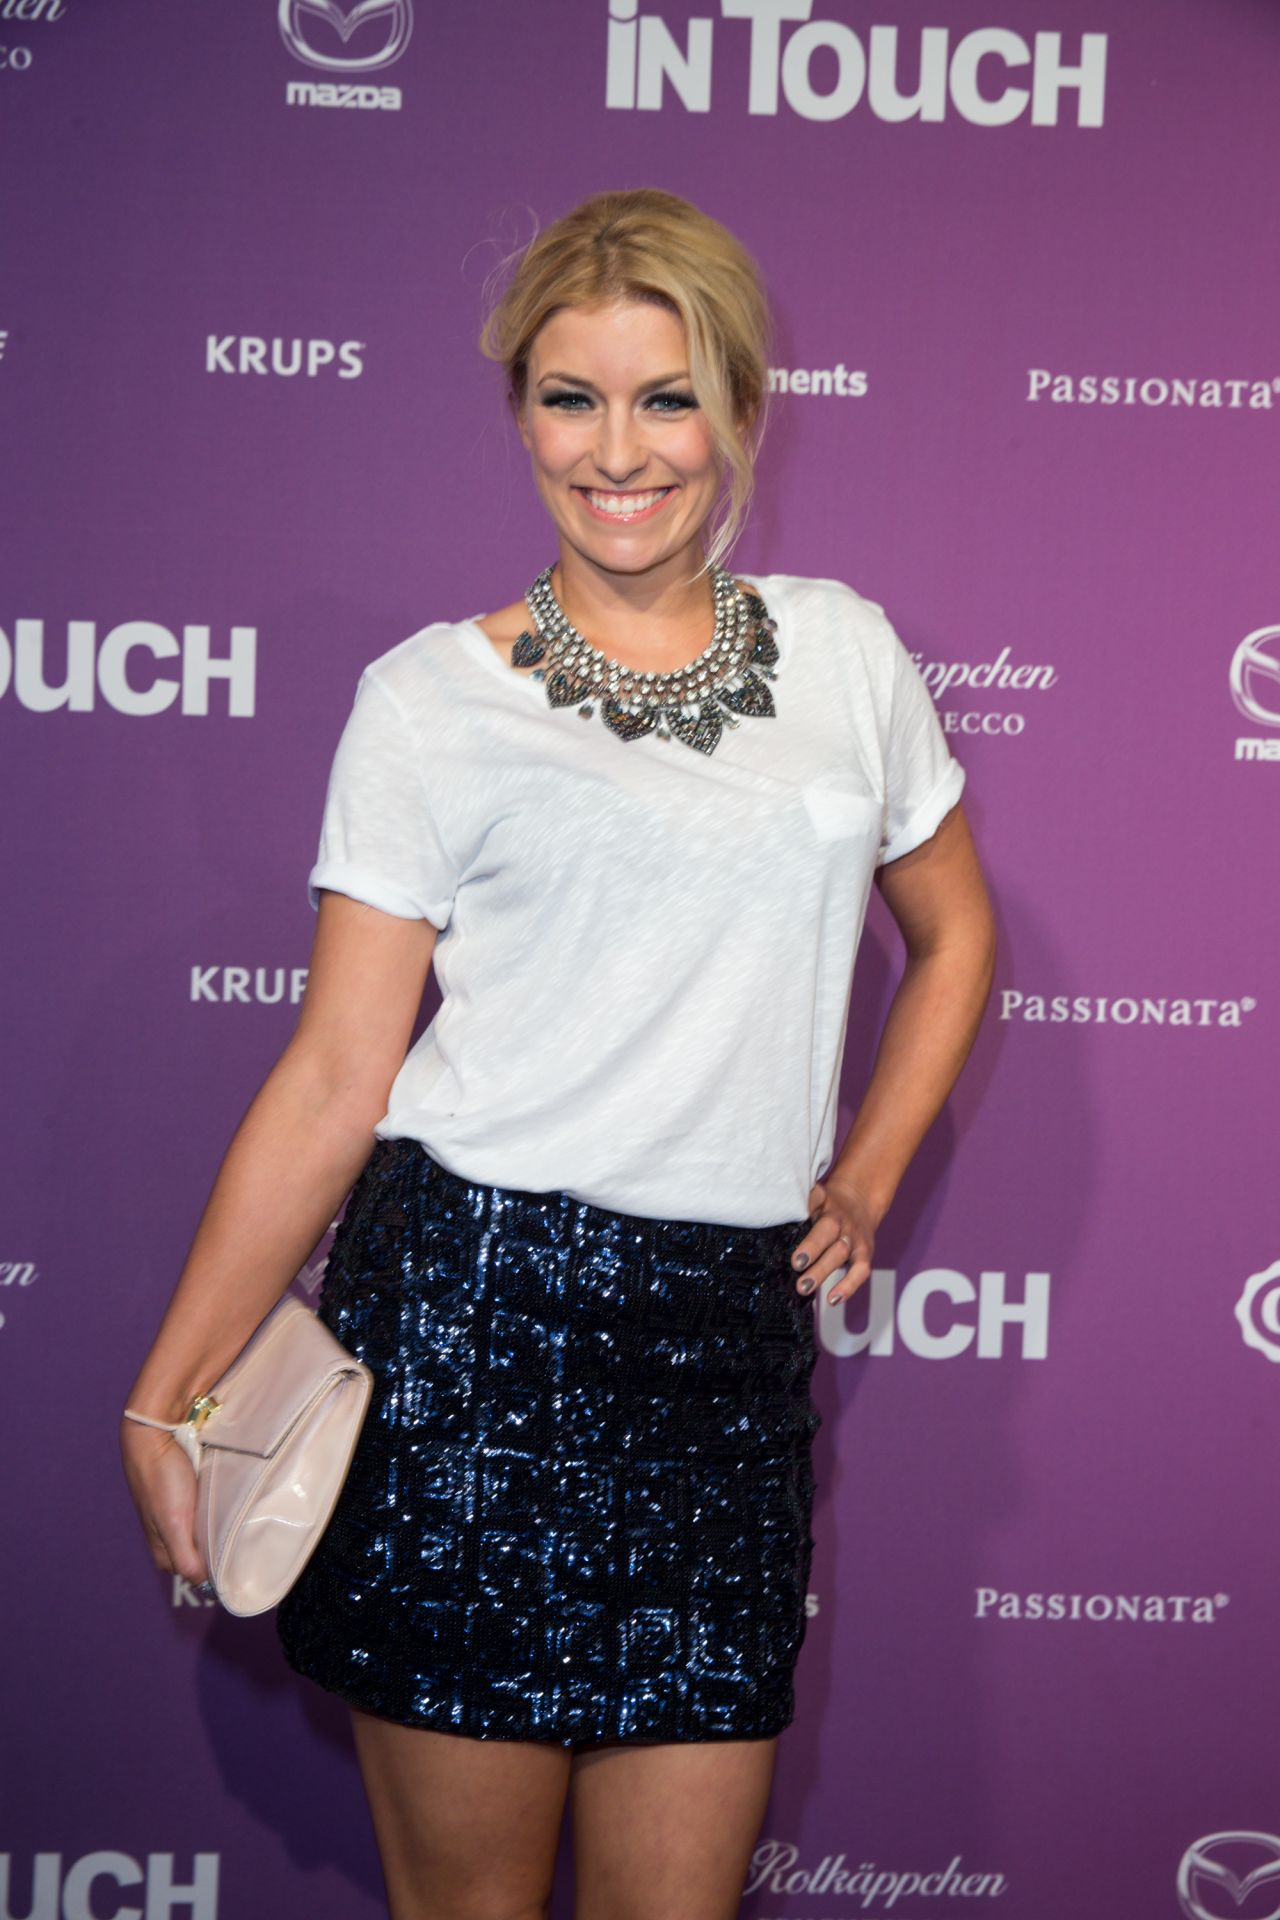 Annica Hansen – Icons & Idols No. 3 Event for the 10th Anniversary of InTouch Magazine in Düsseldorf